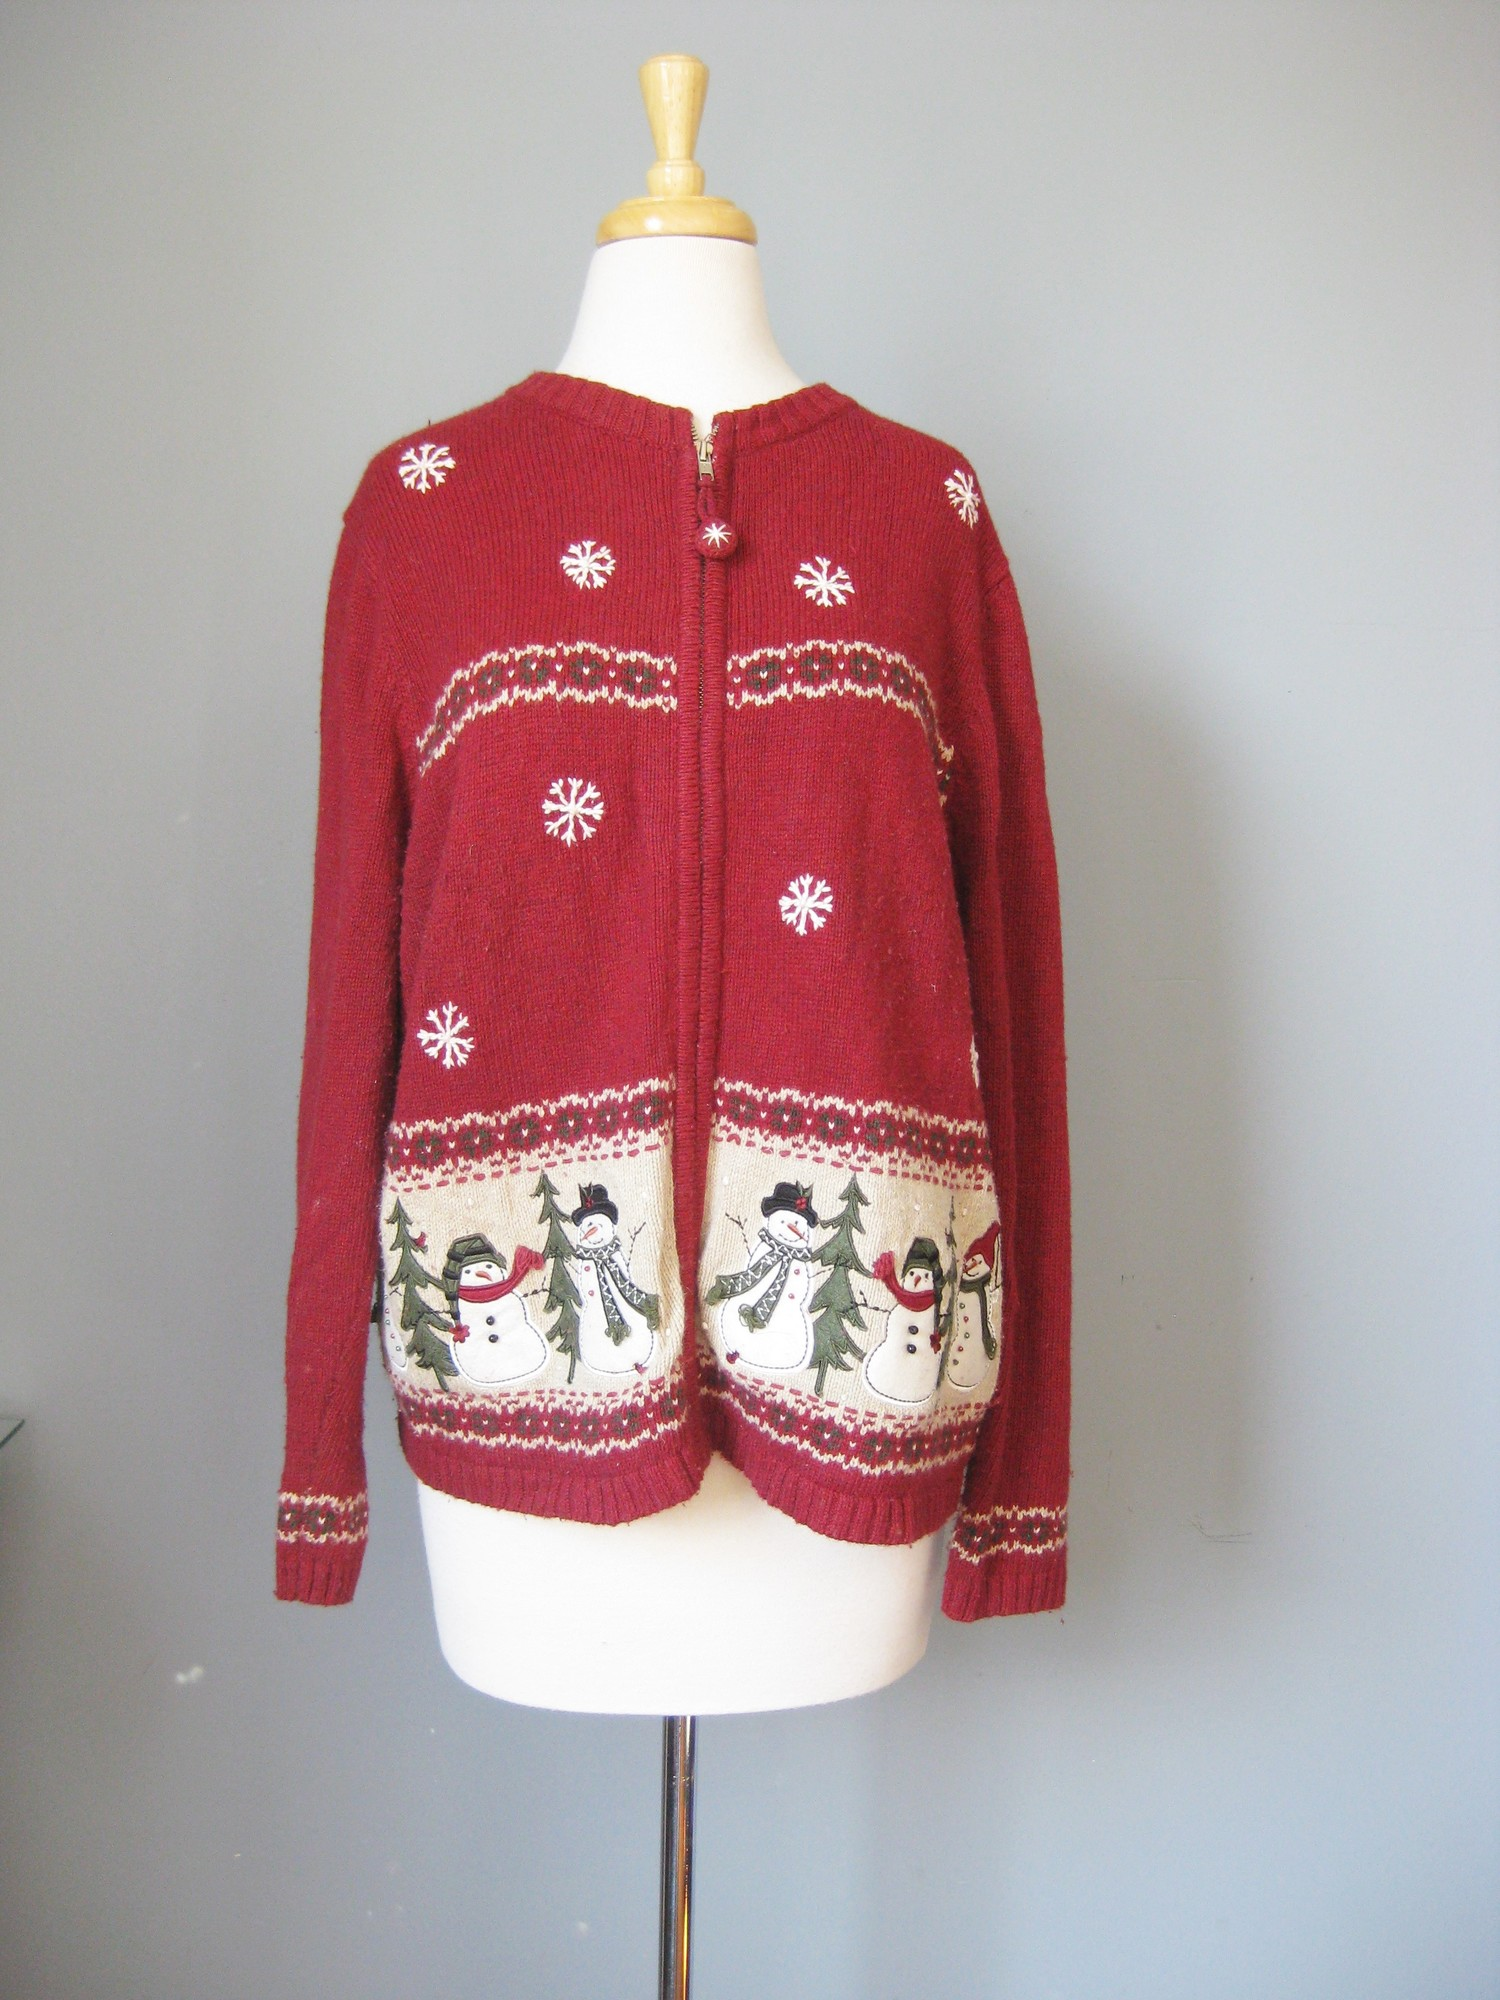 Croft & Barrow Christmas, Burgundy, Size: XL<br /> Corft & Barrow Cute (not ugly!) Christmas Cardigan Sweater in red with snowmen and Christamas Trees appliqued and embrodered<br /> I love the pom poms on the zipper pull<br /> Size XL<br /> Cotton Blend<br />  armpit to armpit: 22.5in<br /> length: 26.75in<br />  thanks for looking!<br /> <br /> #8138